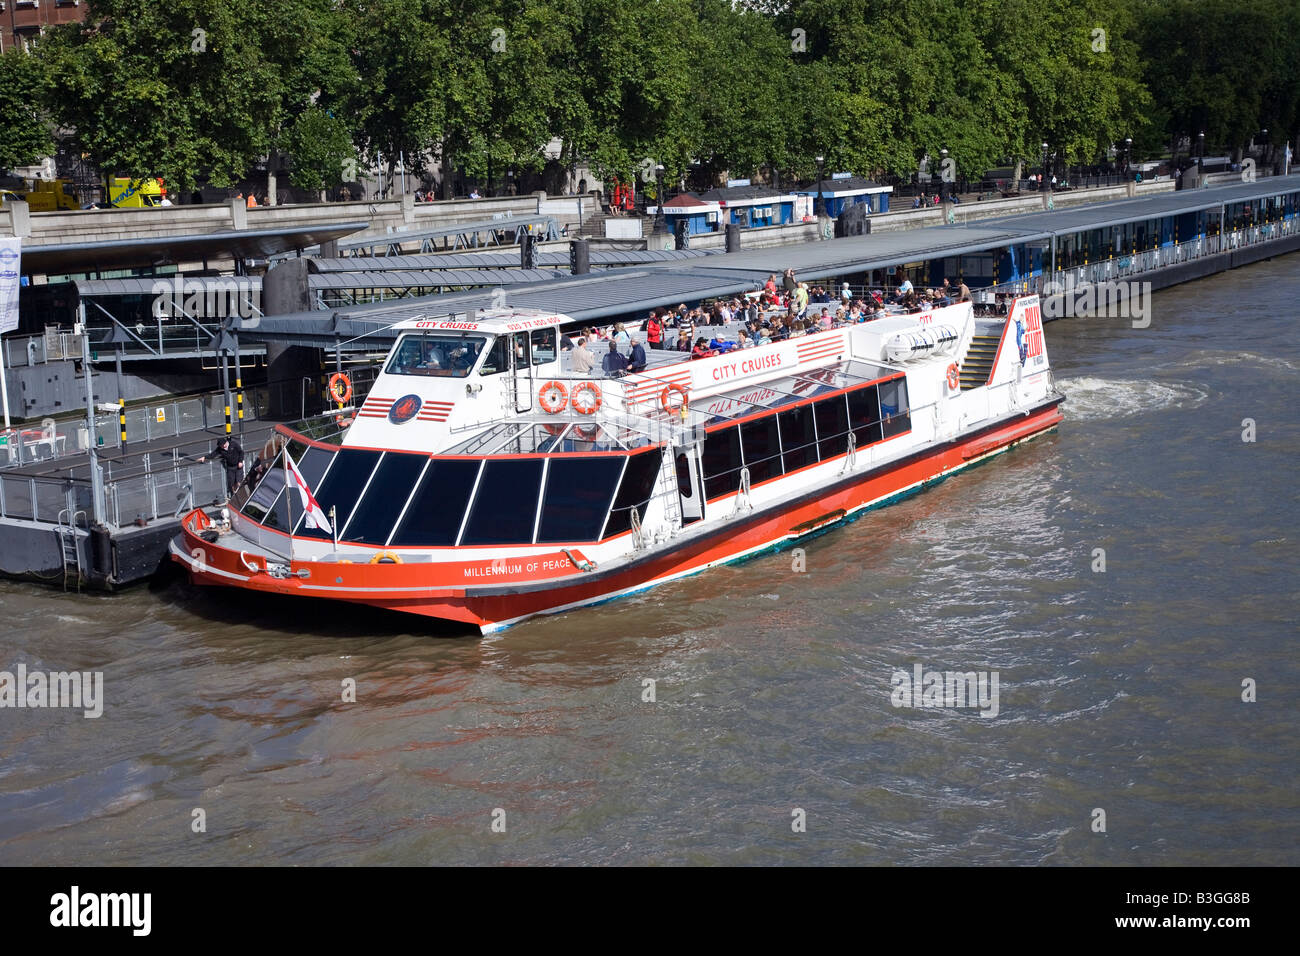 River Cruise Boat River Thames London - Stock Image